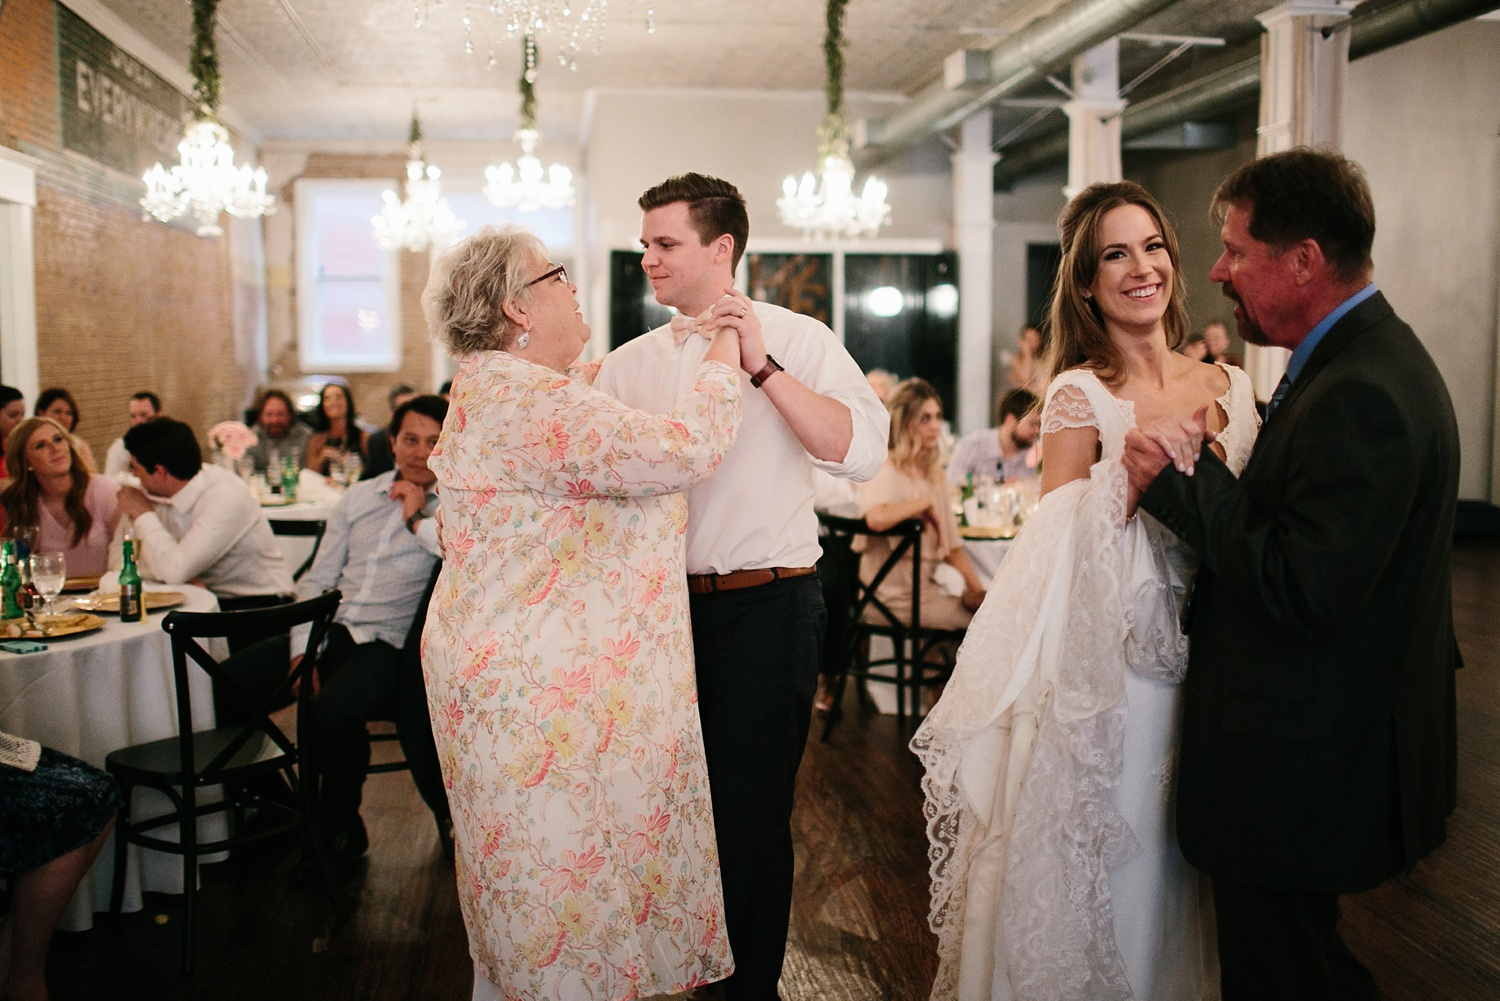 Amber + Daniel an intimate, simple, spring ceremony at Heard Craig Center and reception at Gather in McKinney, Texas by North Texas Wedding Photographer Rachel Meagan Photography 127